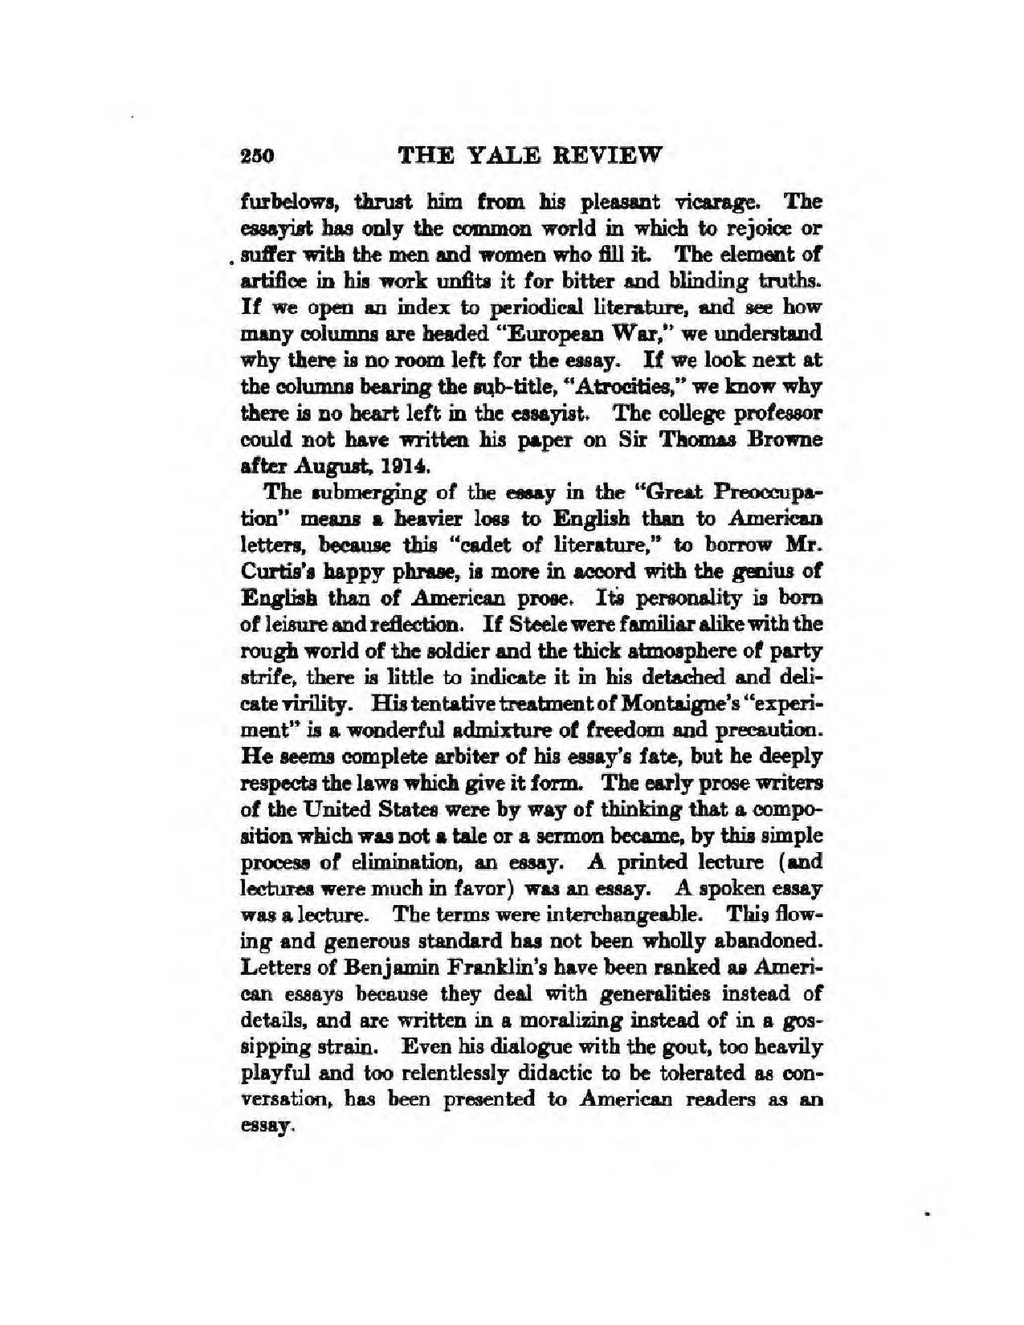 007 Essay Example What Is An American Page2 1024px The In War Time2c Agnes Repplier2c 1918 Stupendous Thesis Your Dream Ideas Full